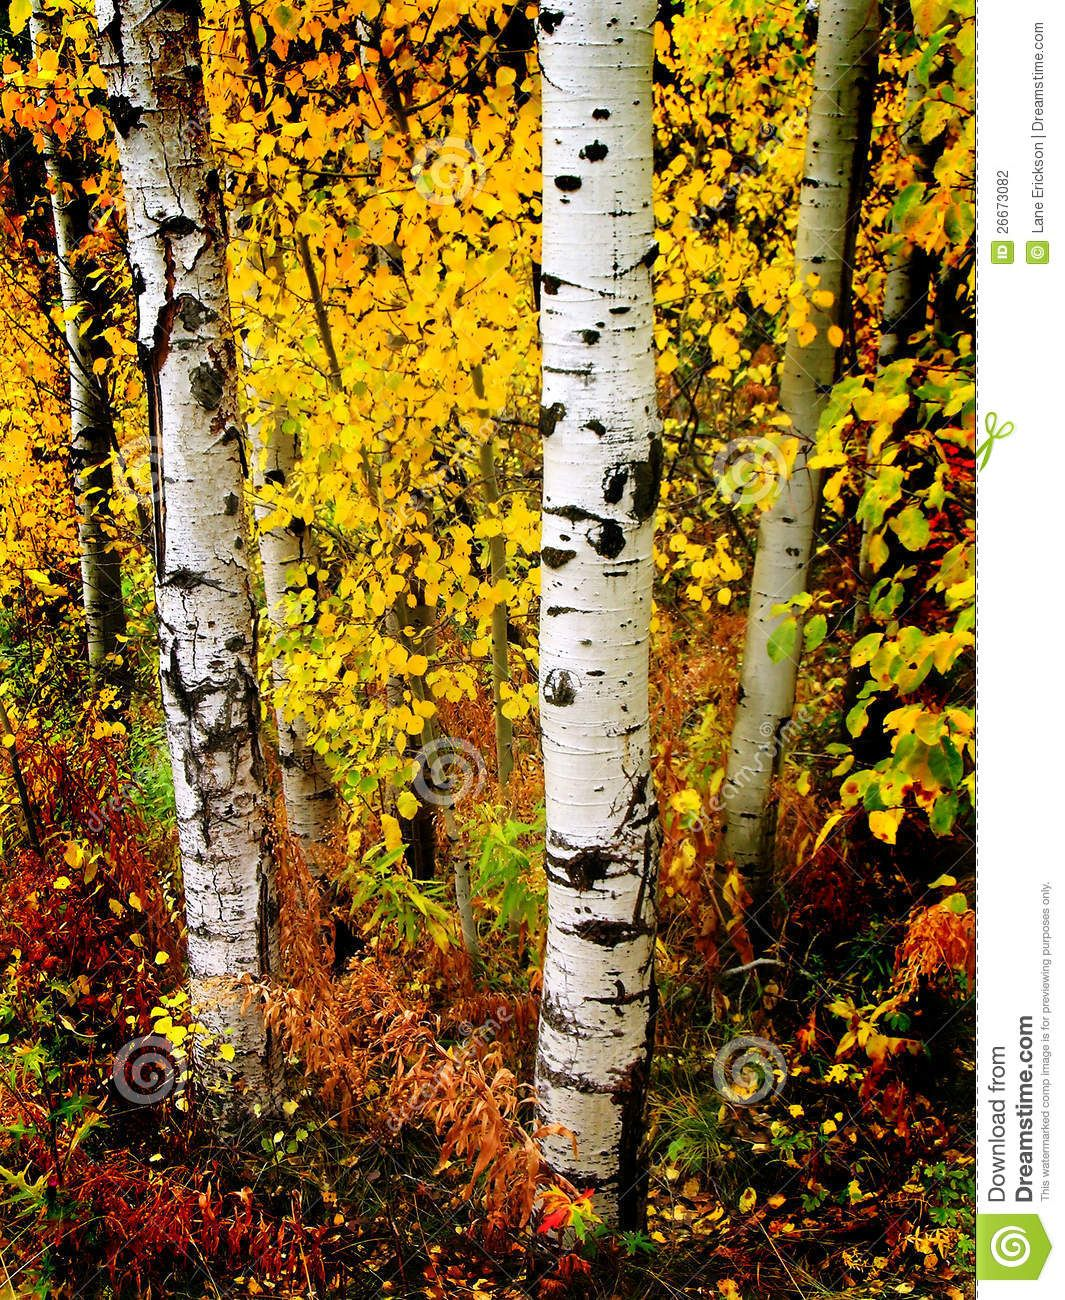 Wallpaper Images Of Fall Trees Lined Lake Pictures Of Birch Trees In The Fall Detail Of Several